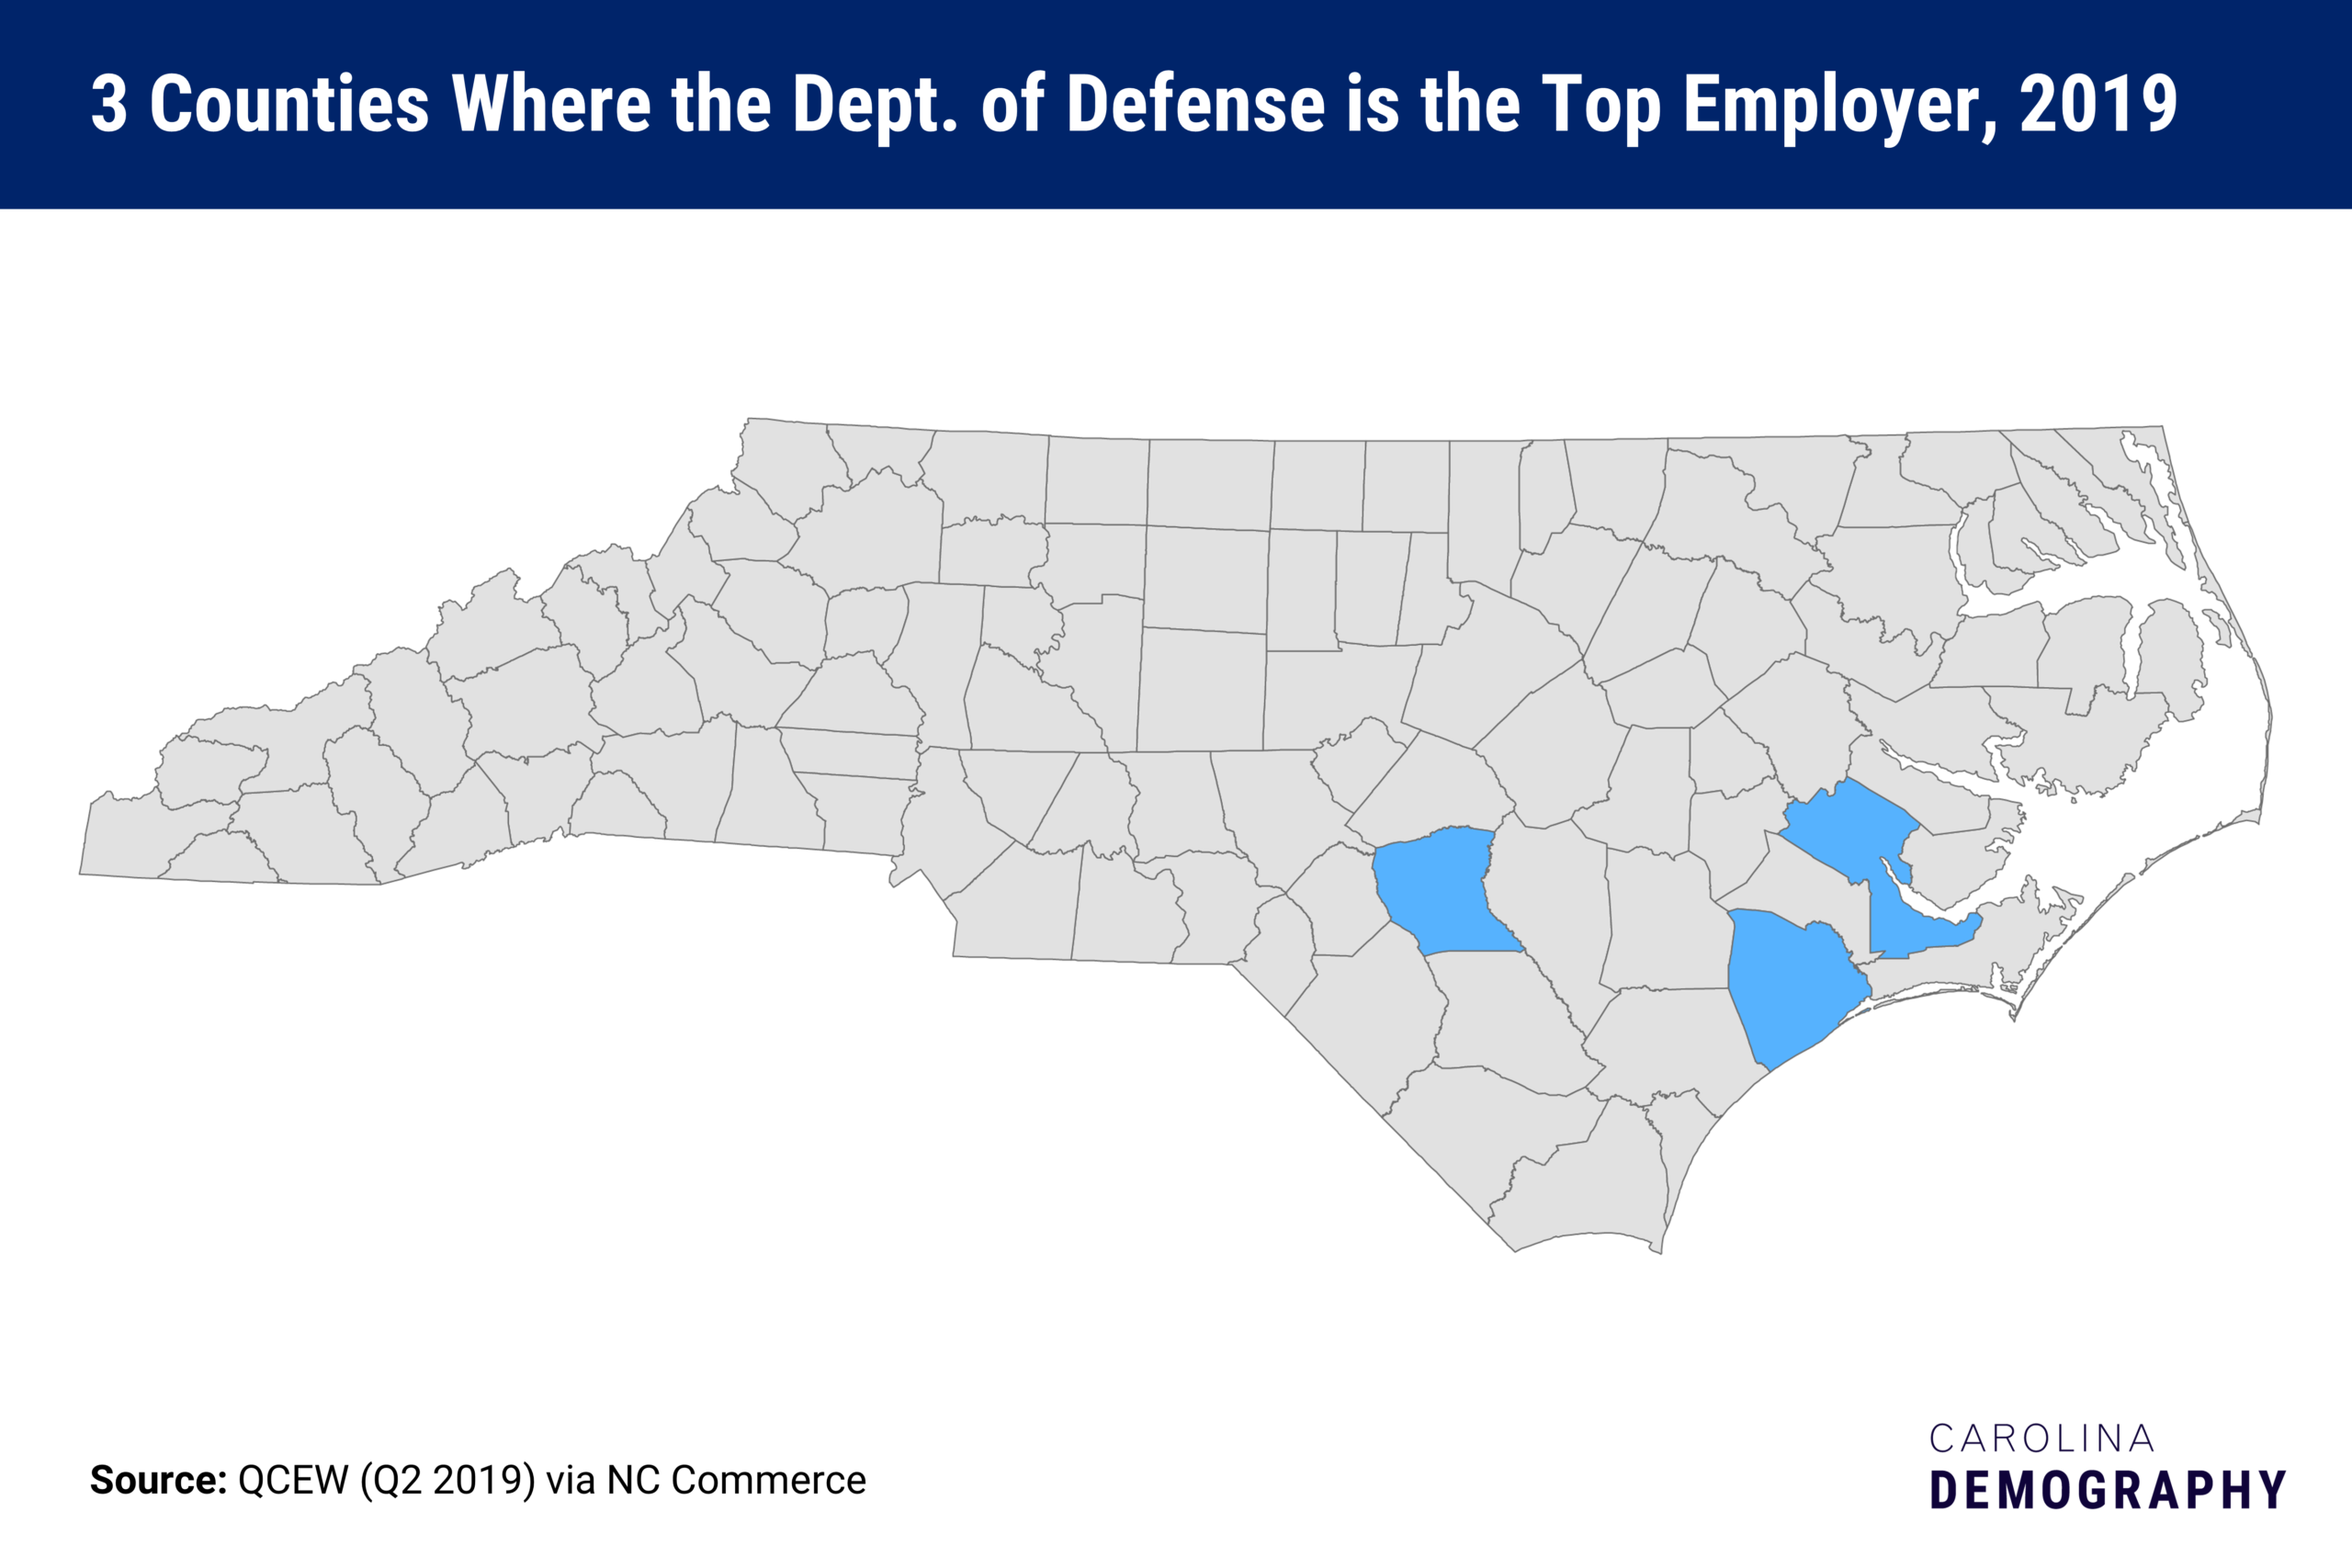 3 counties where the dept. of defense is the top employer, 2019